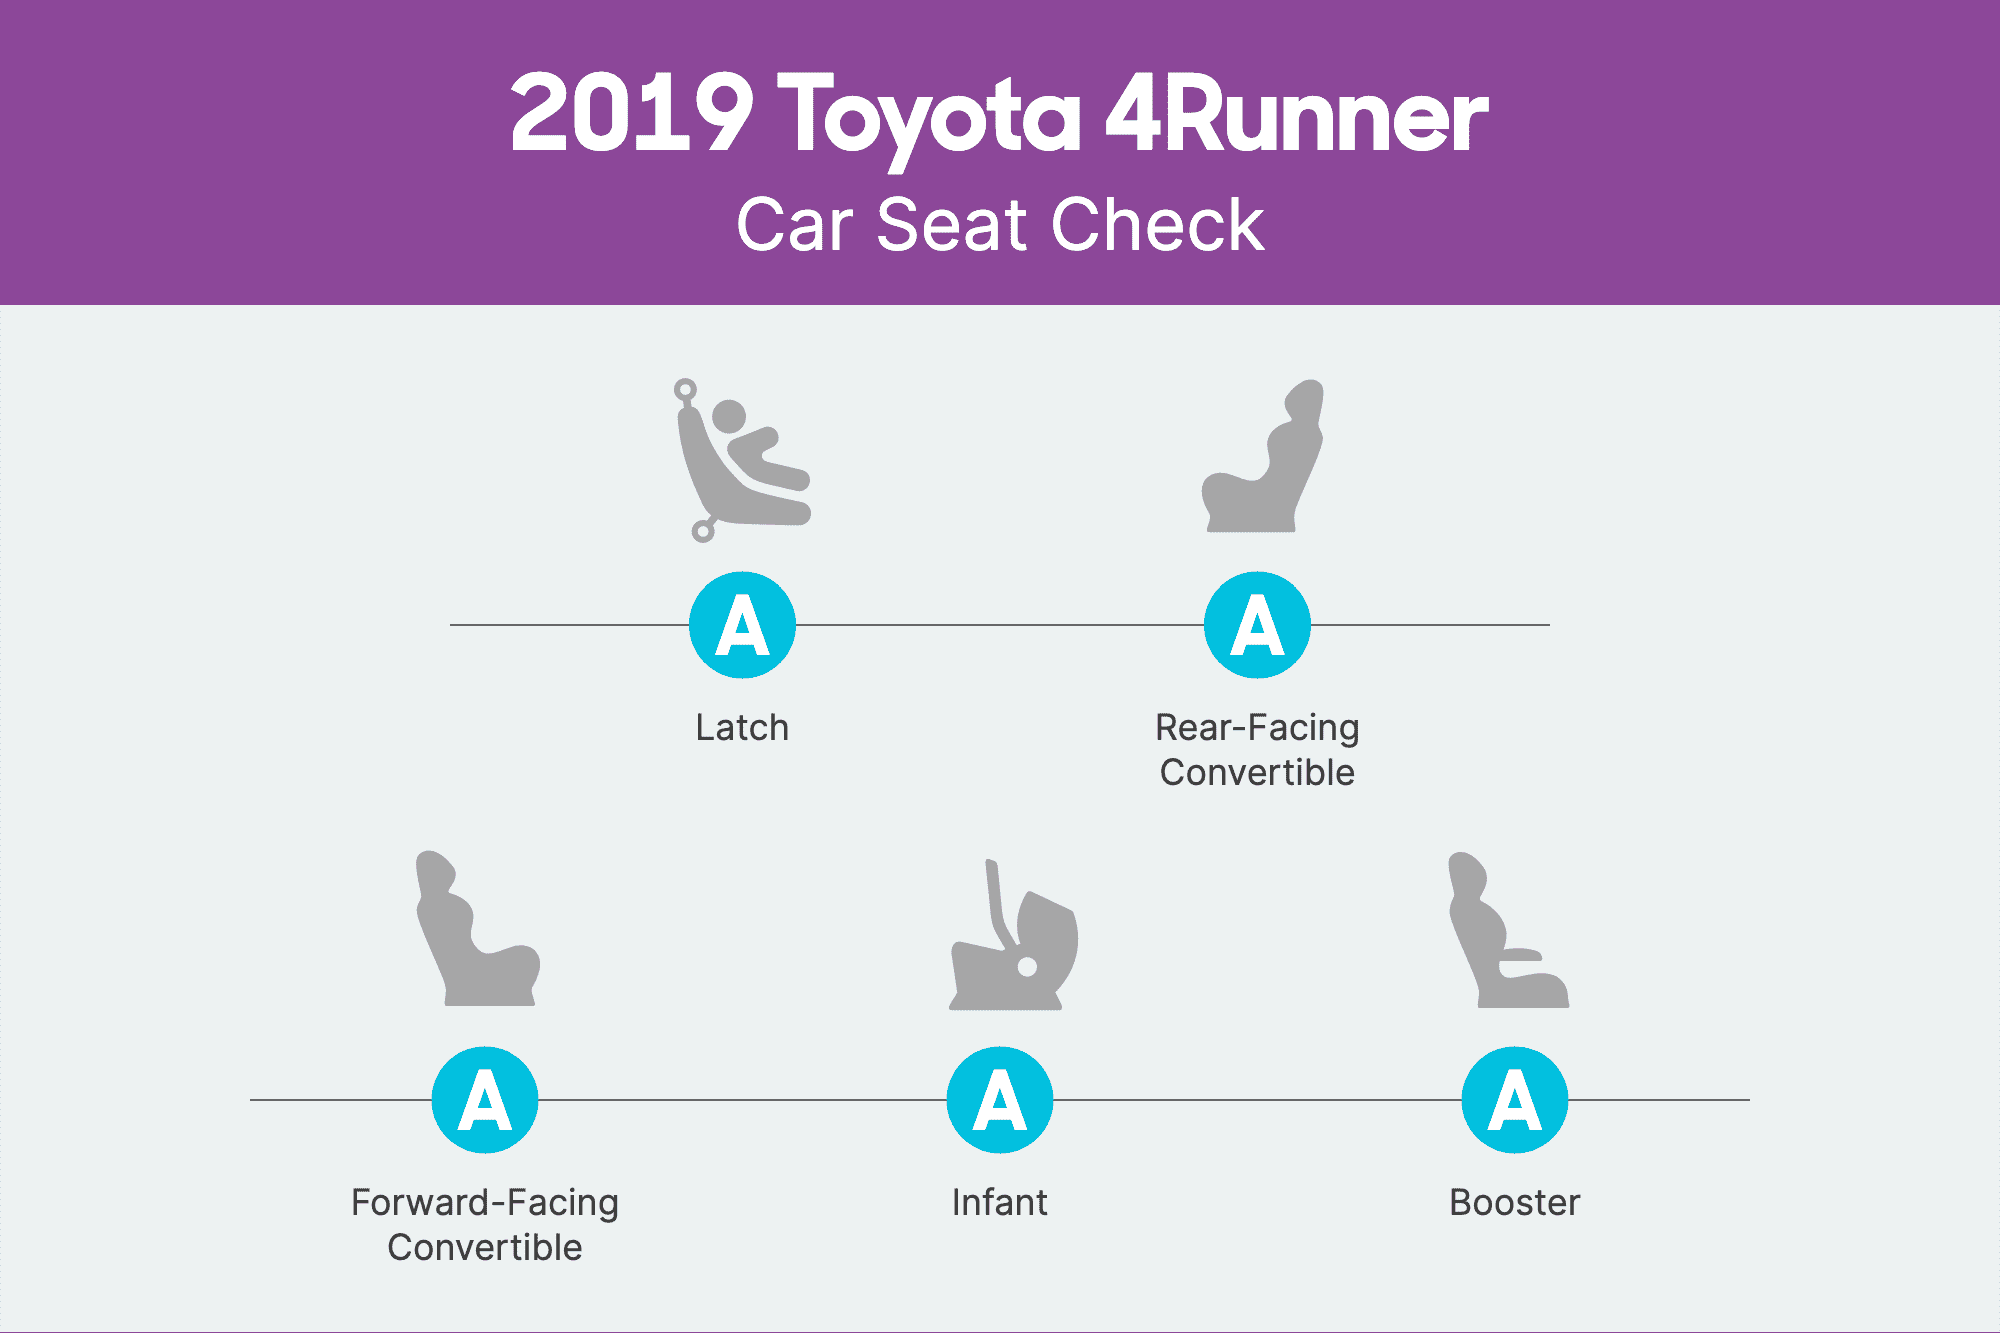 How Do Car Seats Fit in a 2019 Toyota 4Runner?